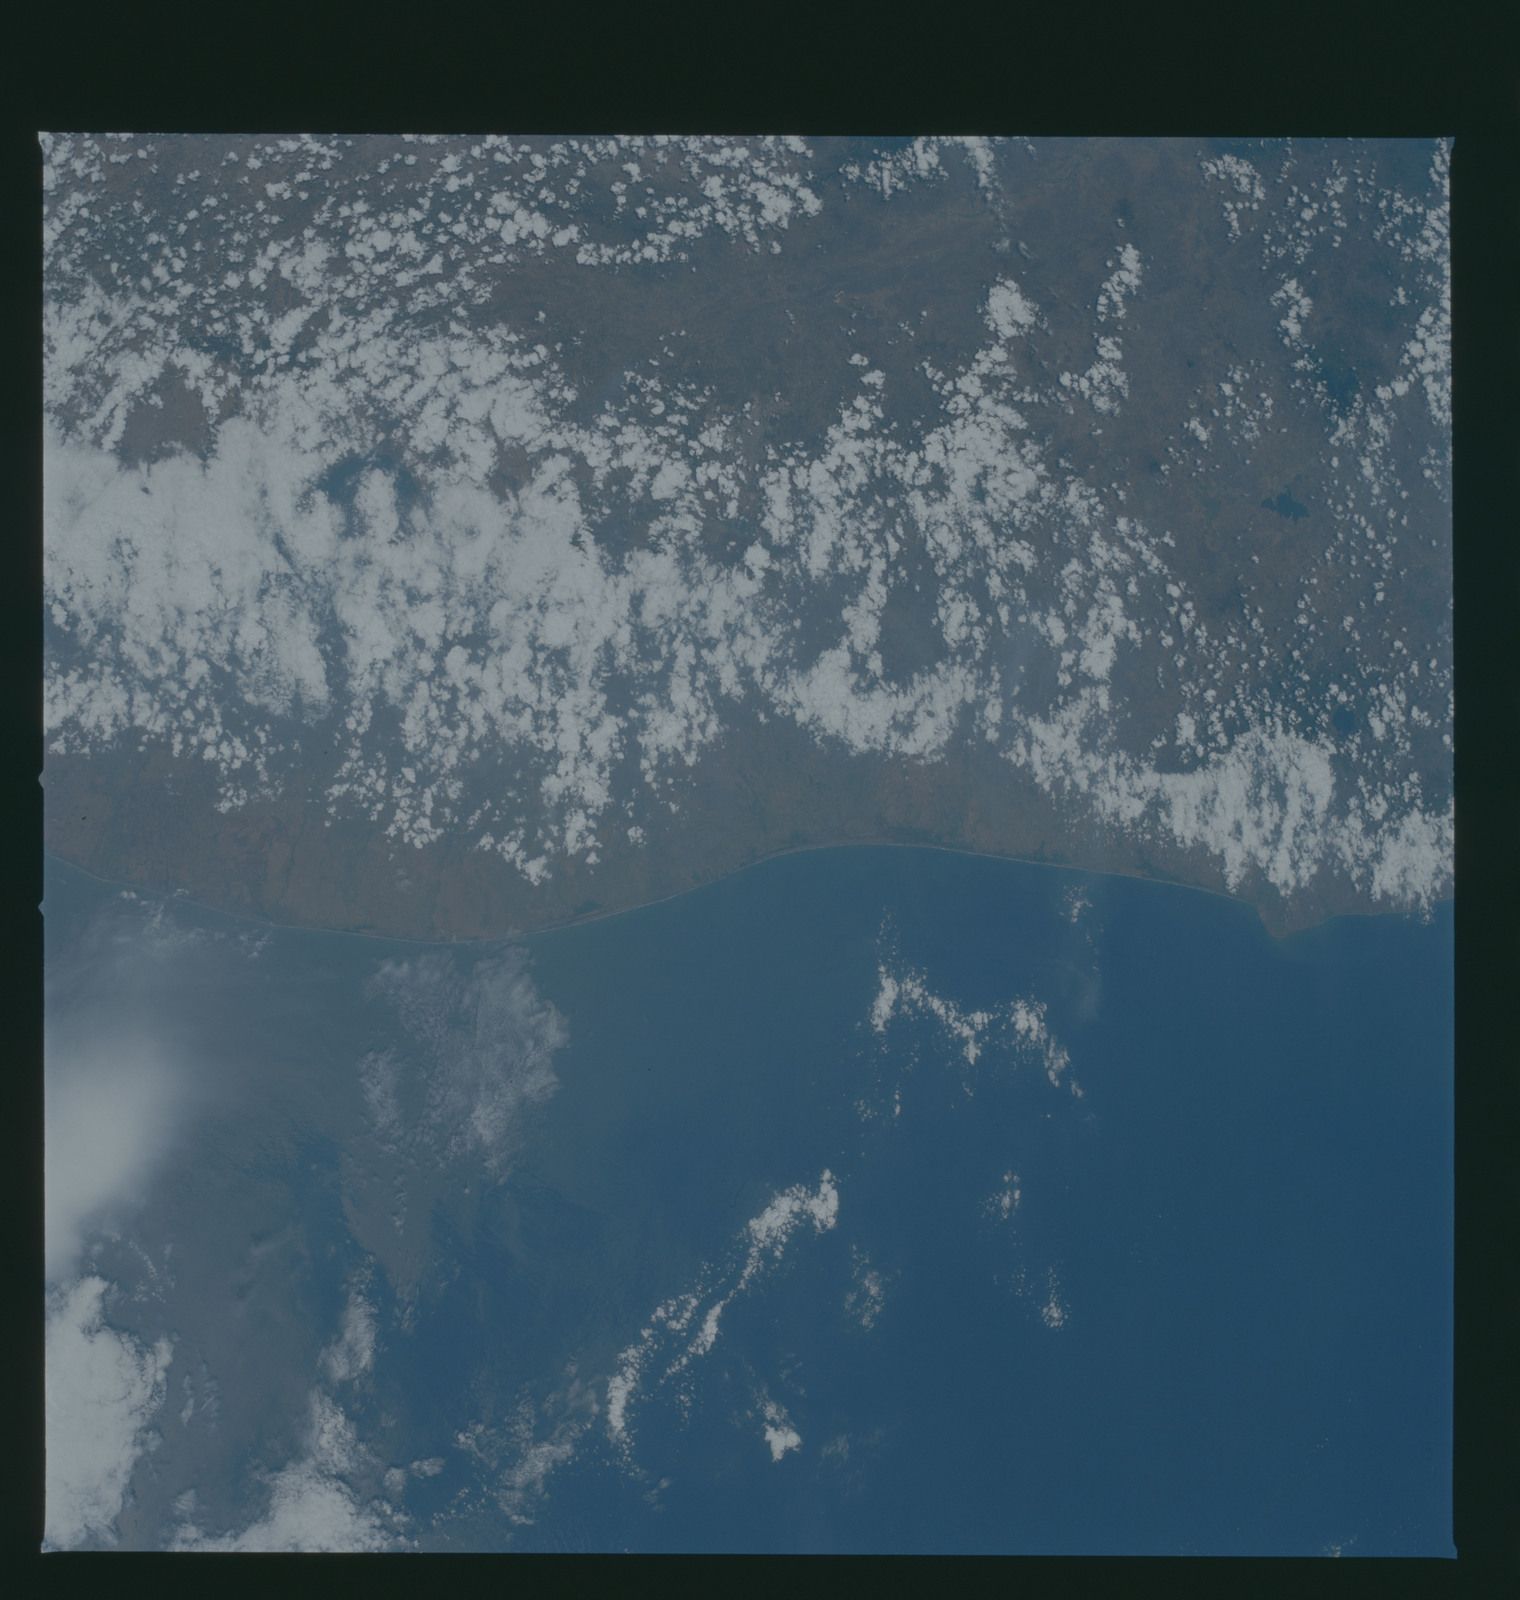 S37-94-016 - STS-037 - Earth observations taken from OV-104 during STS-37 mission